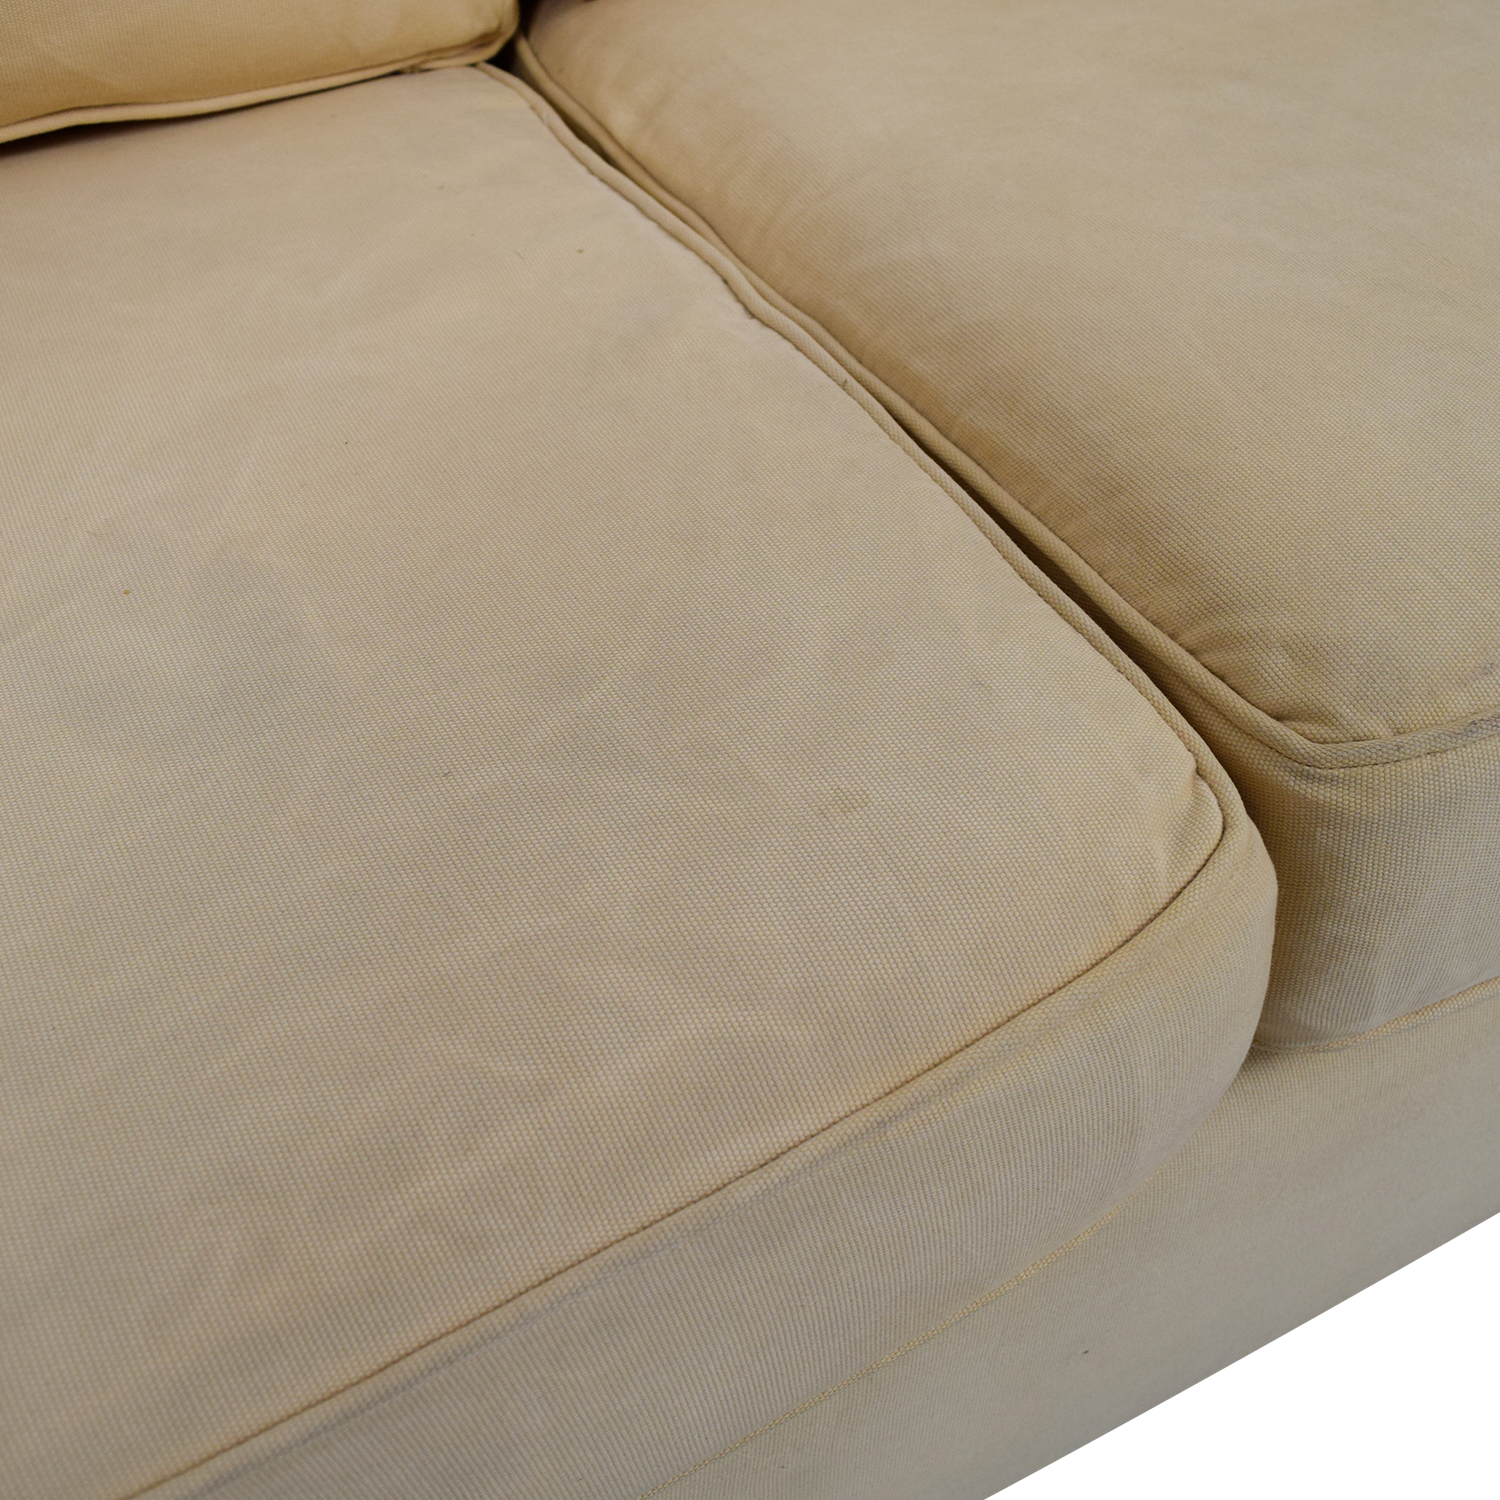 Pottery Barn Pottery Barn Tan Three-Cushion Sofa dimensions